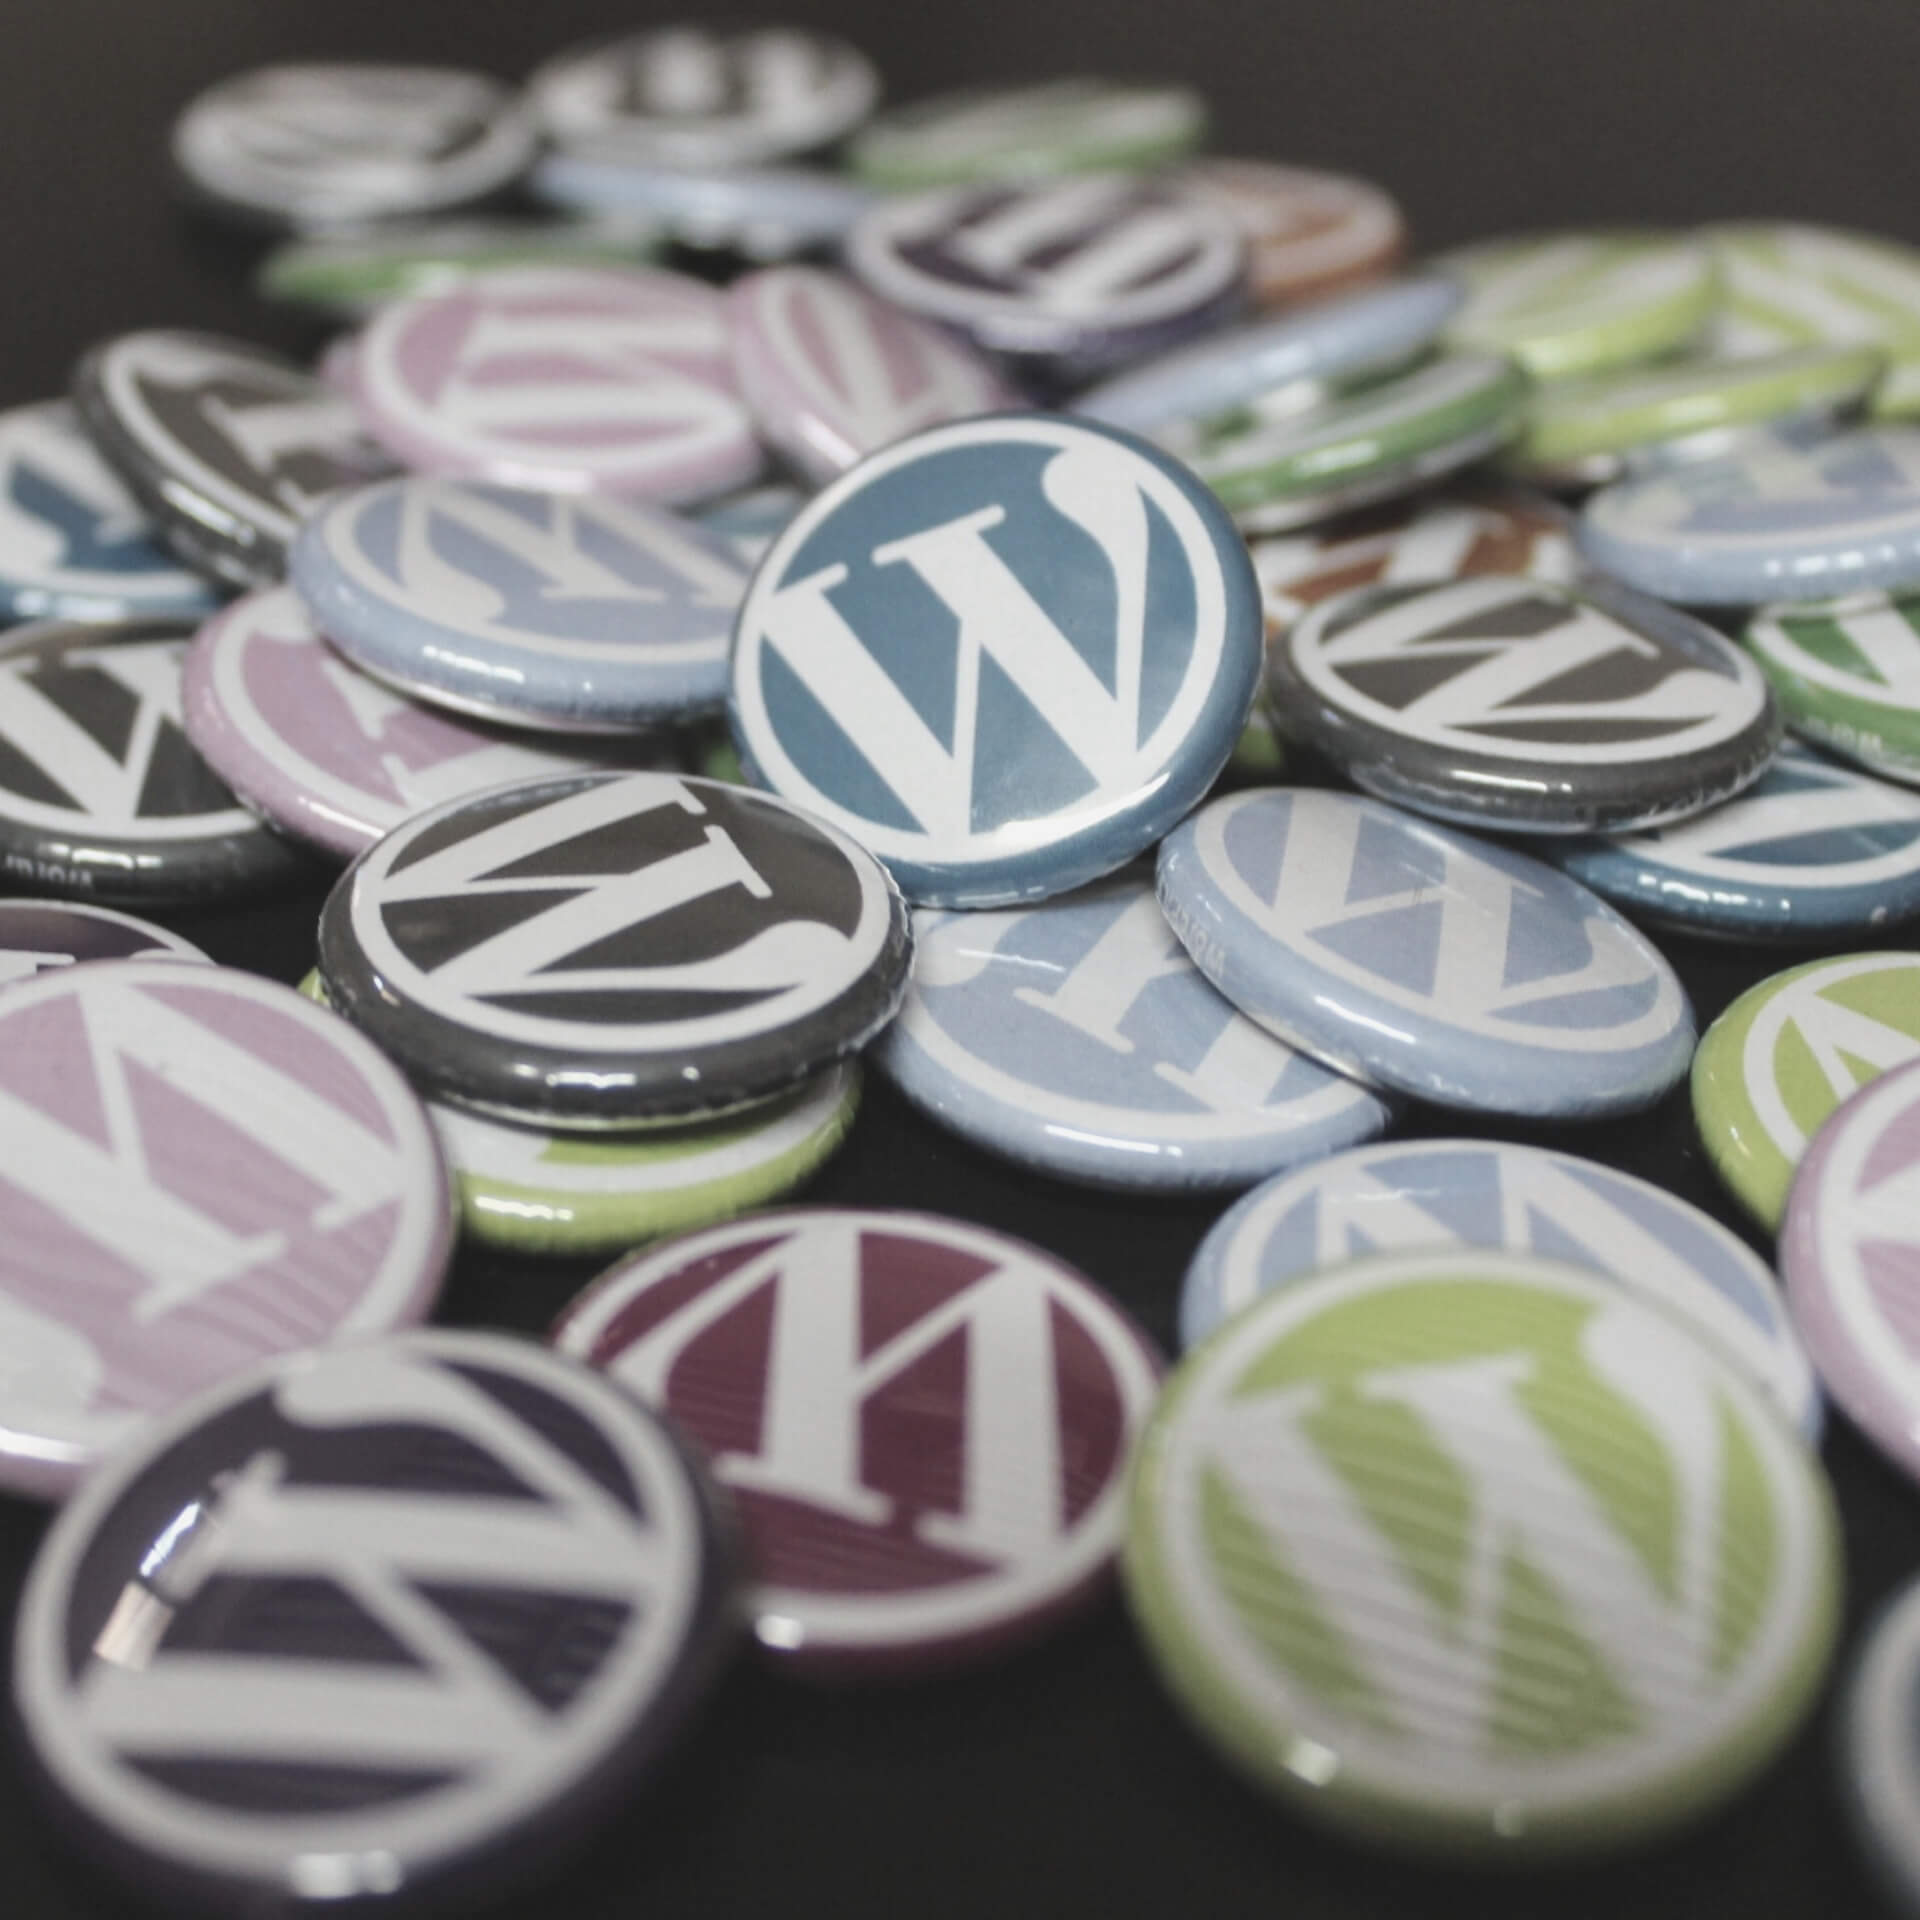 WordPress for Business: A pile of multicolors buttons with the WordPress logo on them.